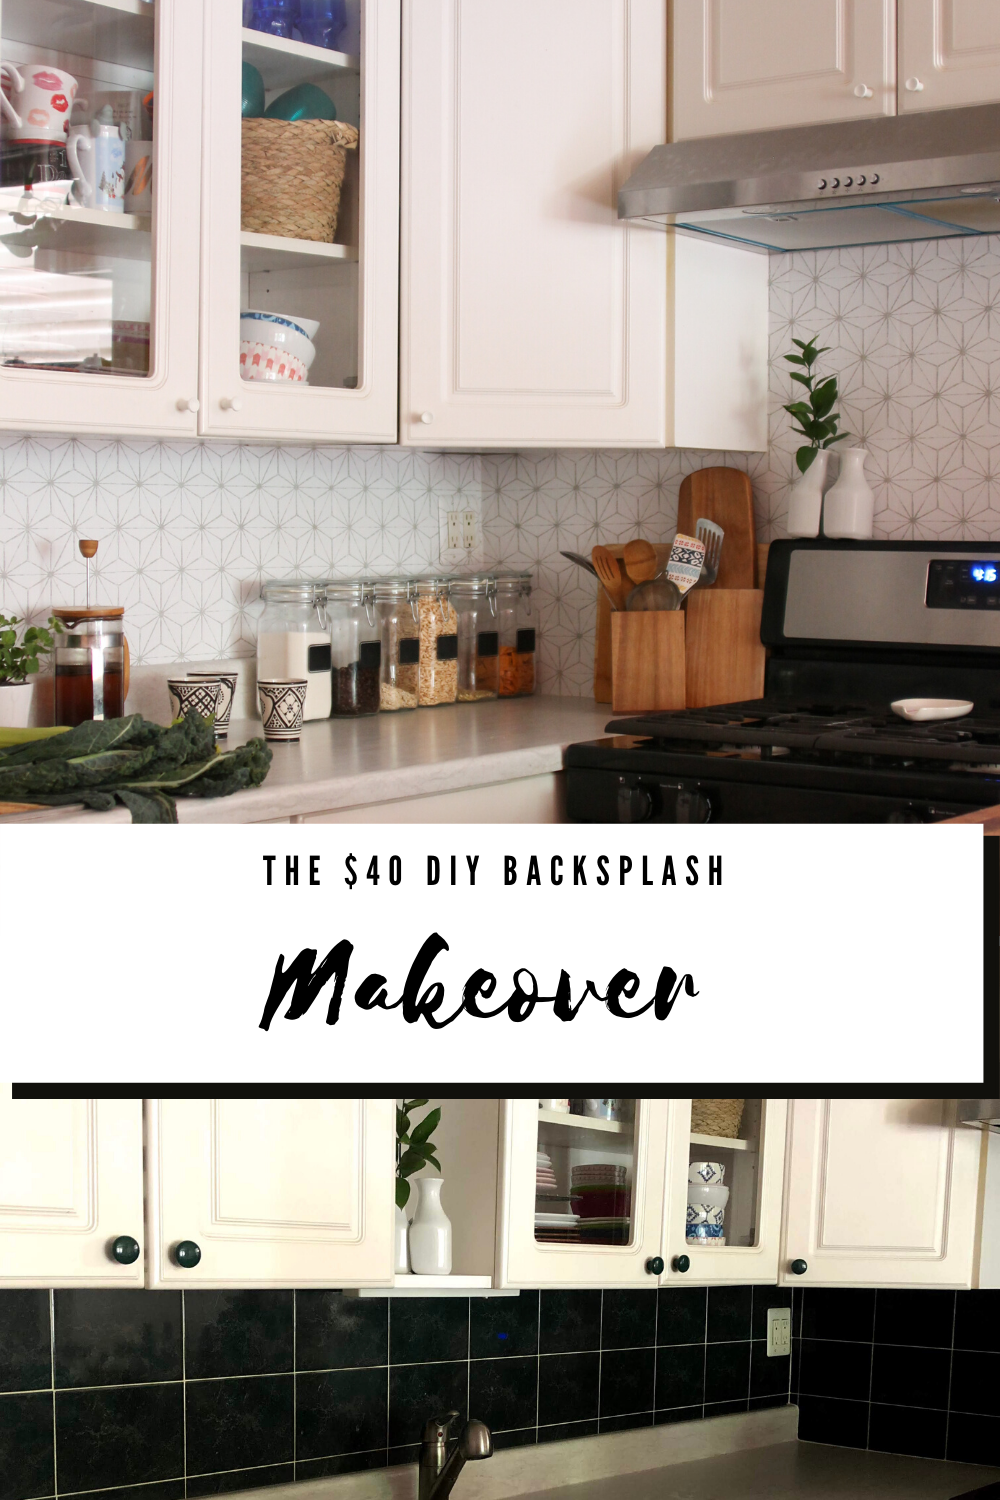 diy kitchen backsplash, kitchen backsplash diy, cheap kitchen backsplash ideas, budget friendly kitchen backsplash, kitchen Inso, kitchen hacks for renters, renter friendly kitchen projects, boho kitchens, white kitchen inspiration, kitchen inspo for renters, kitchen backsplash ideas, removable kitchen backsplash, removable wallpaper kitchen backsplash